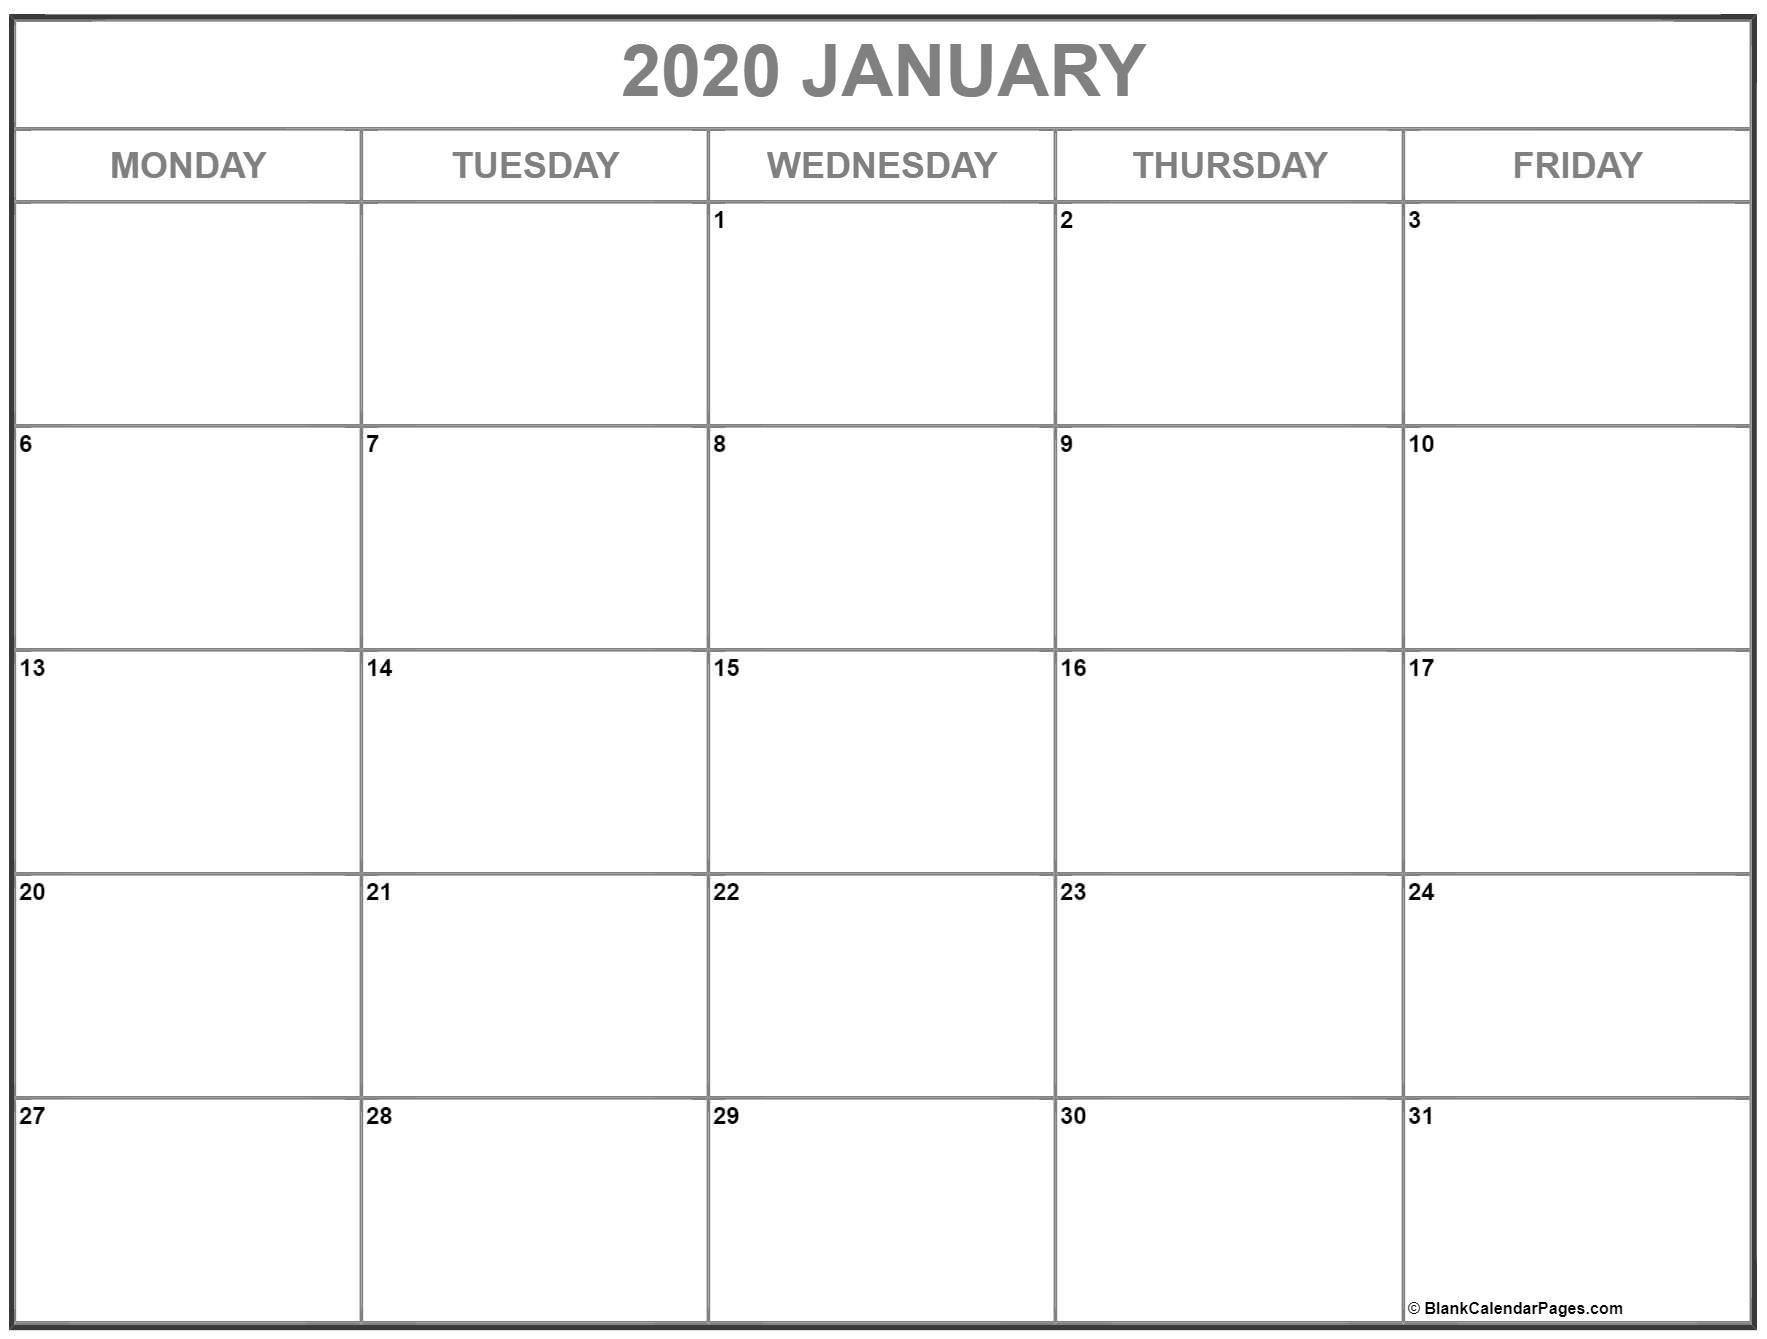 January 2020 Monday Calendar | Monday To Sunday regarding Calendar Template Monday Through Friday